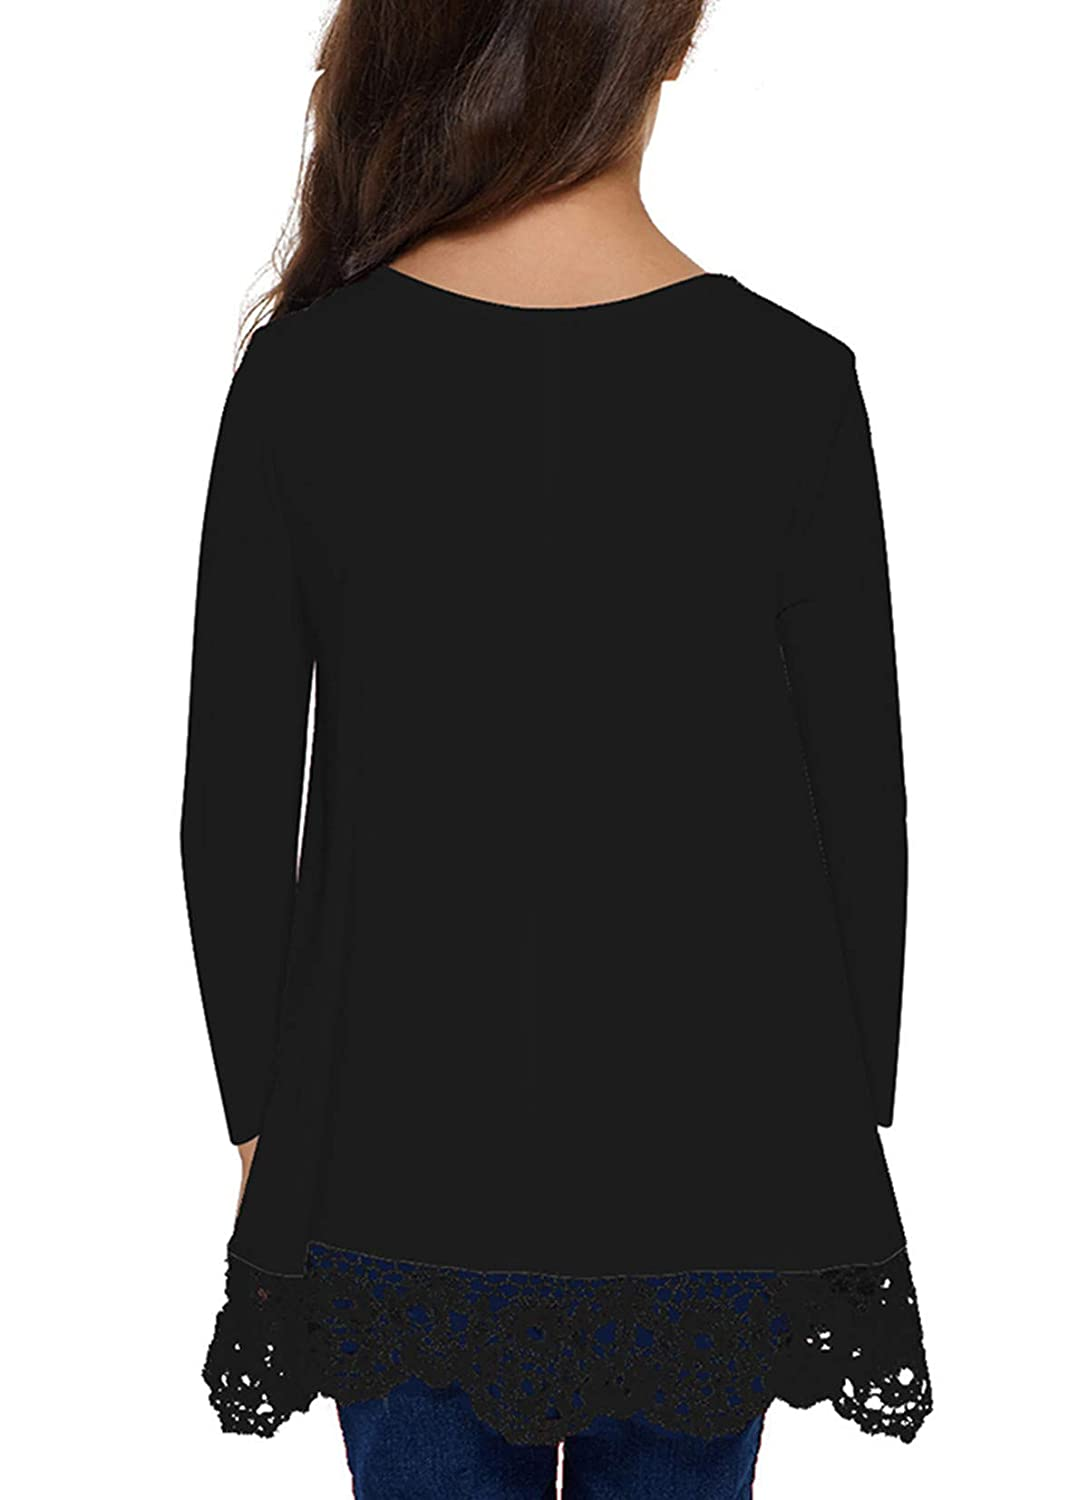 QUEEN PLUS Long Sleeve Blouse for Girls Lace Round Neck Tops Casual Tee Shirts